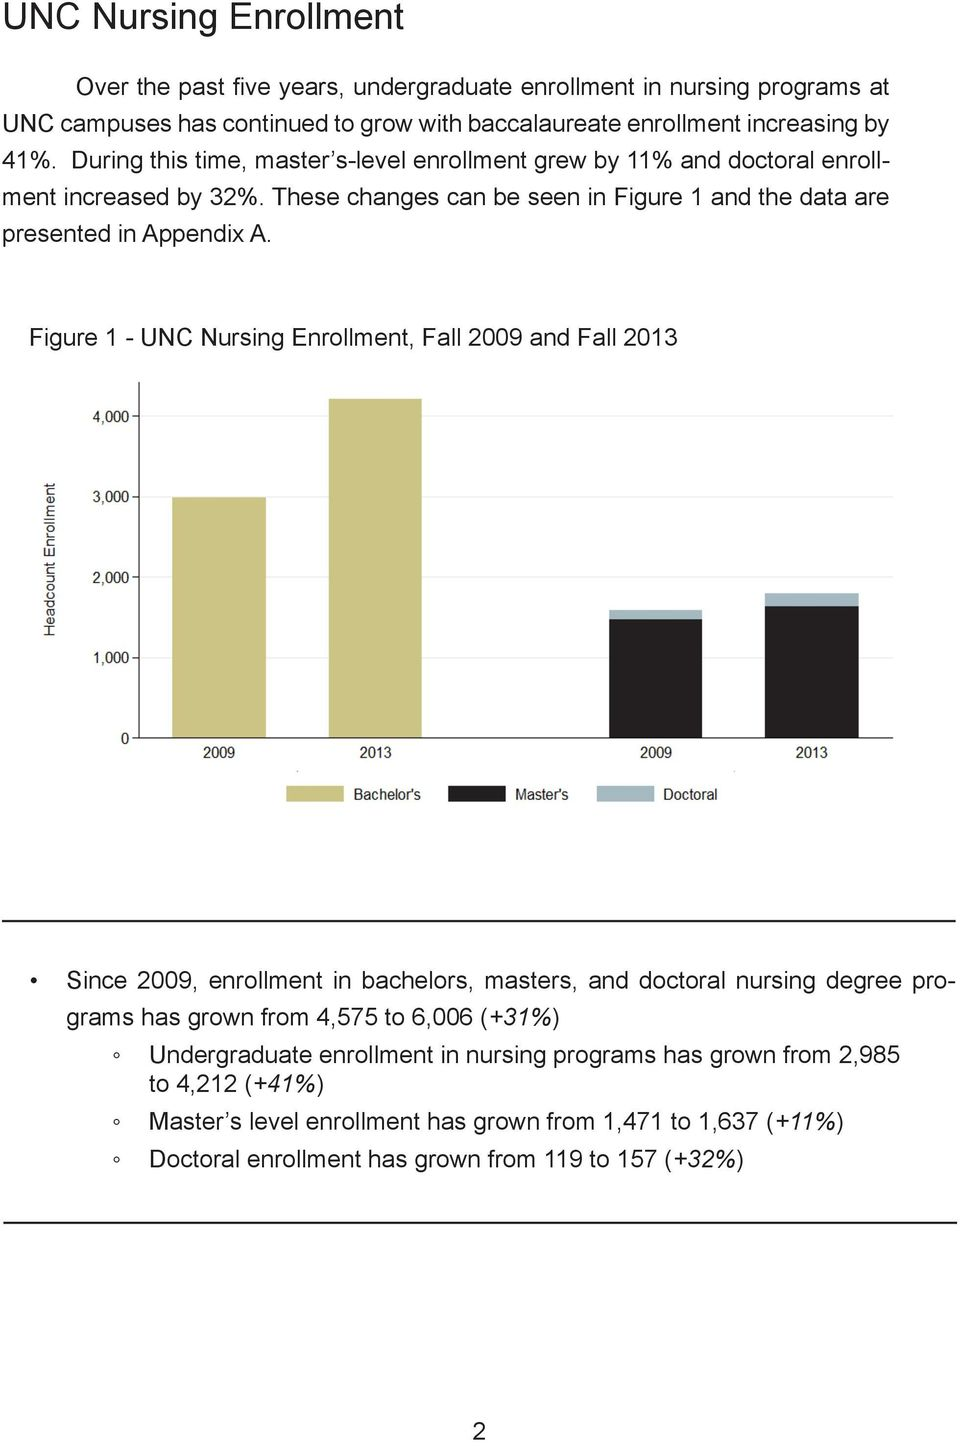 Figure 1 - UNC Nursing Enrollment, Fall 2009 and Fall 2013 Since 2009, enrollment in bachelors, masters, and doctoral nursing degree programs has grown from 4,575 to 6,006 (+31%)